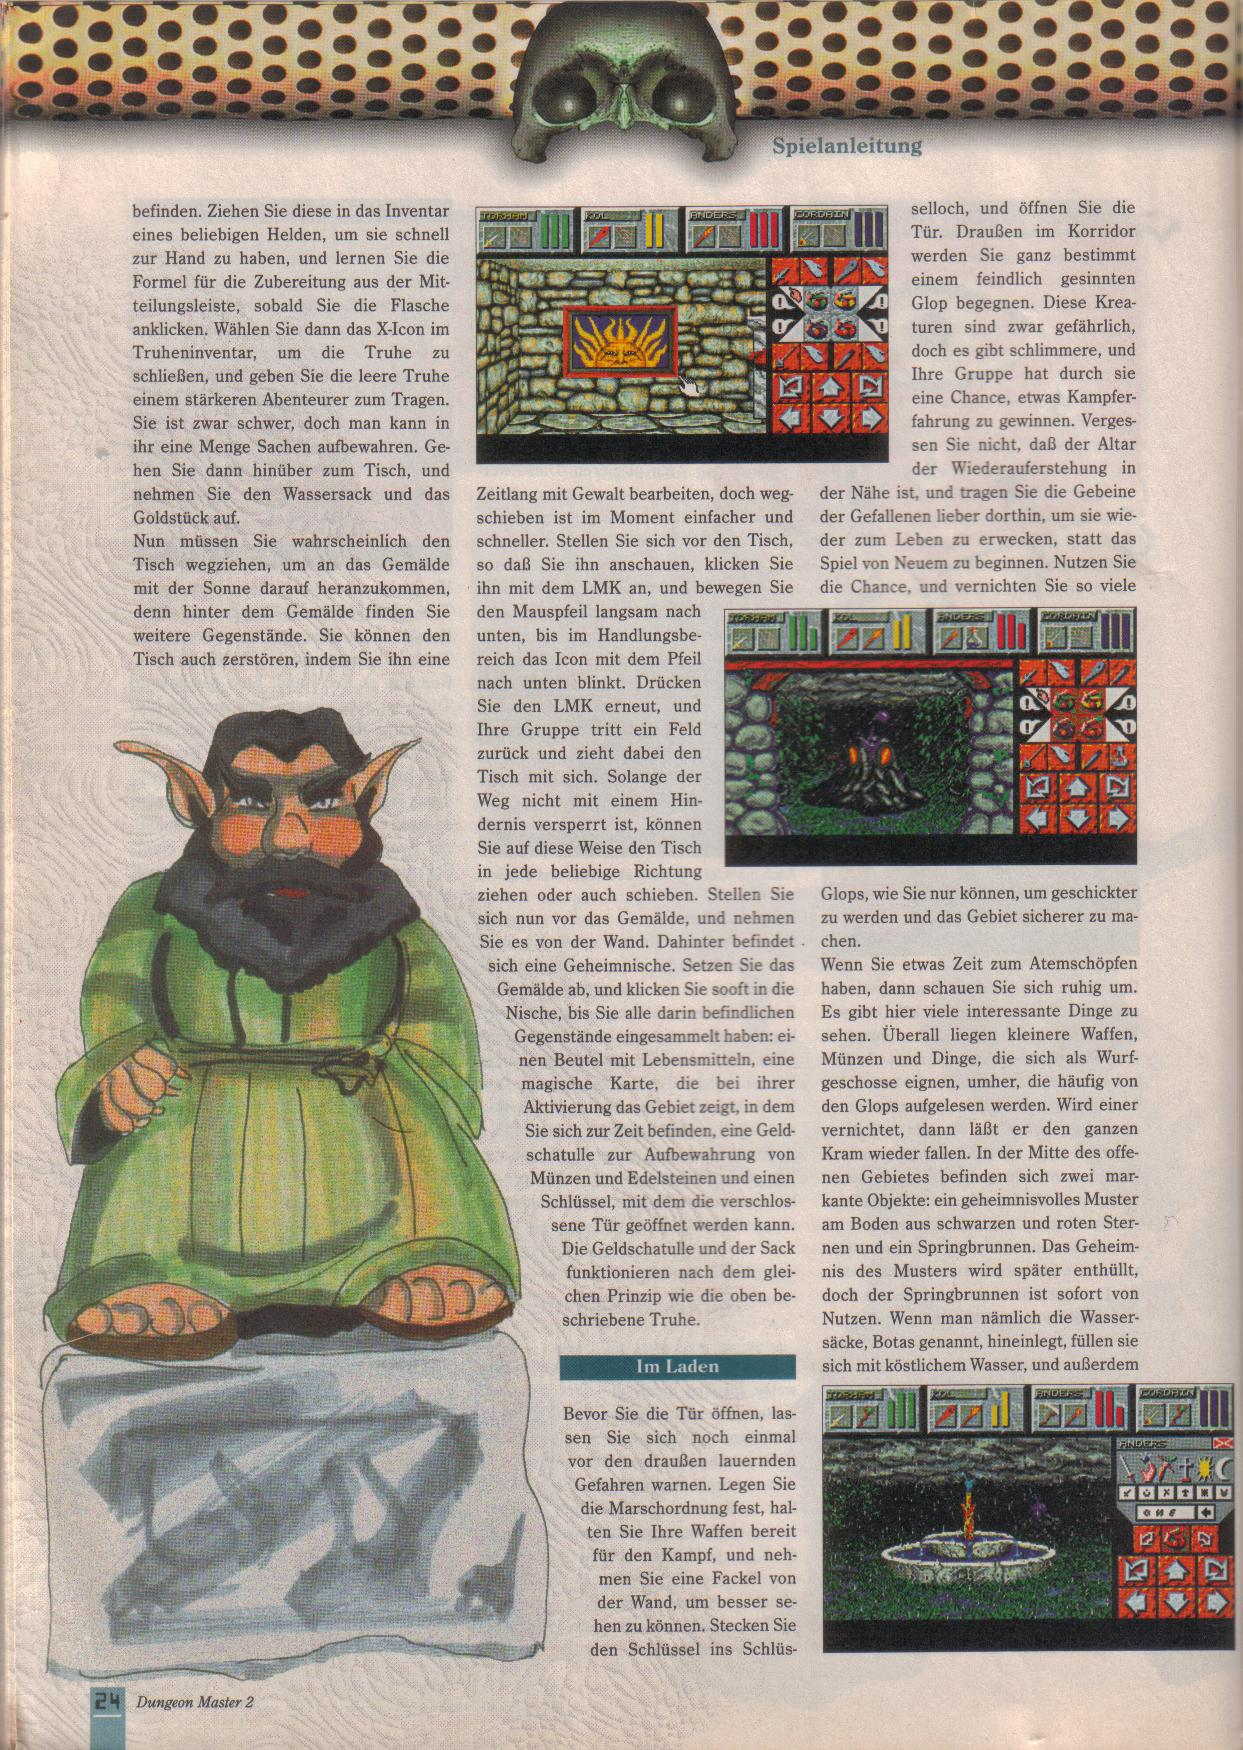 Dungeon Master II for PC (German, Best Seller Games) Page 24